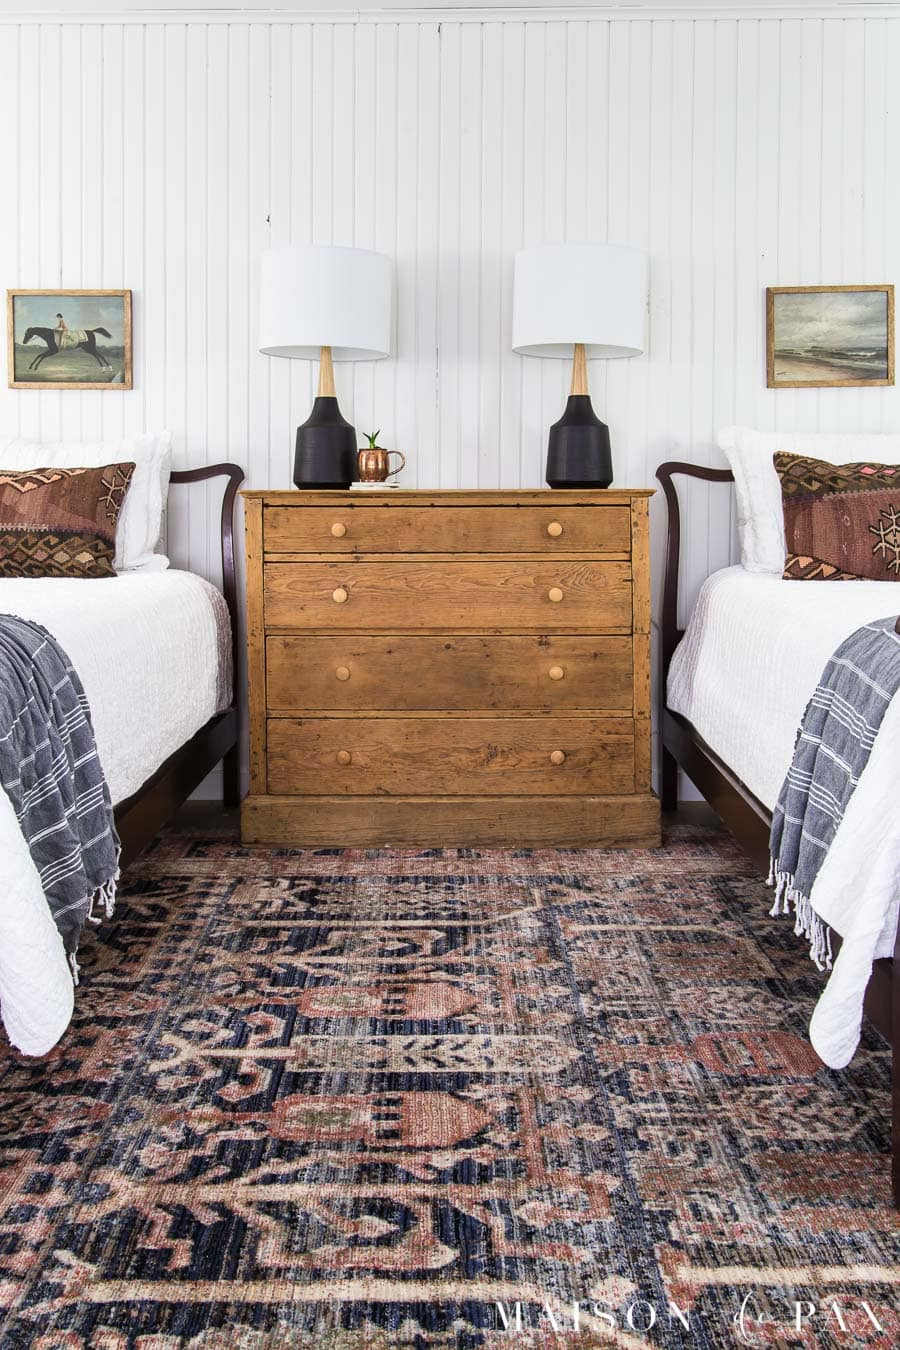 twin beds with vintage art above